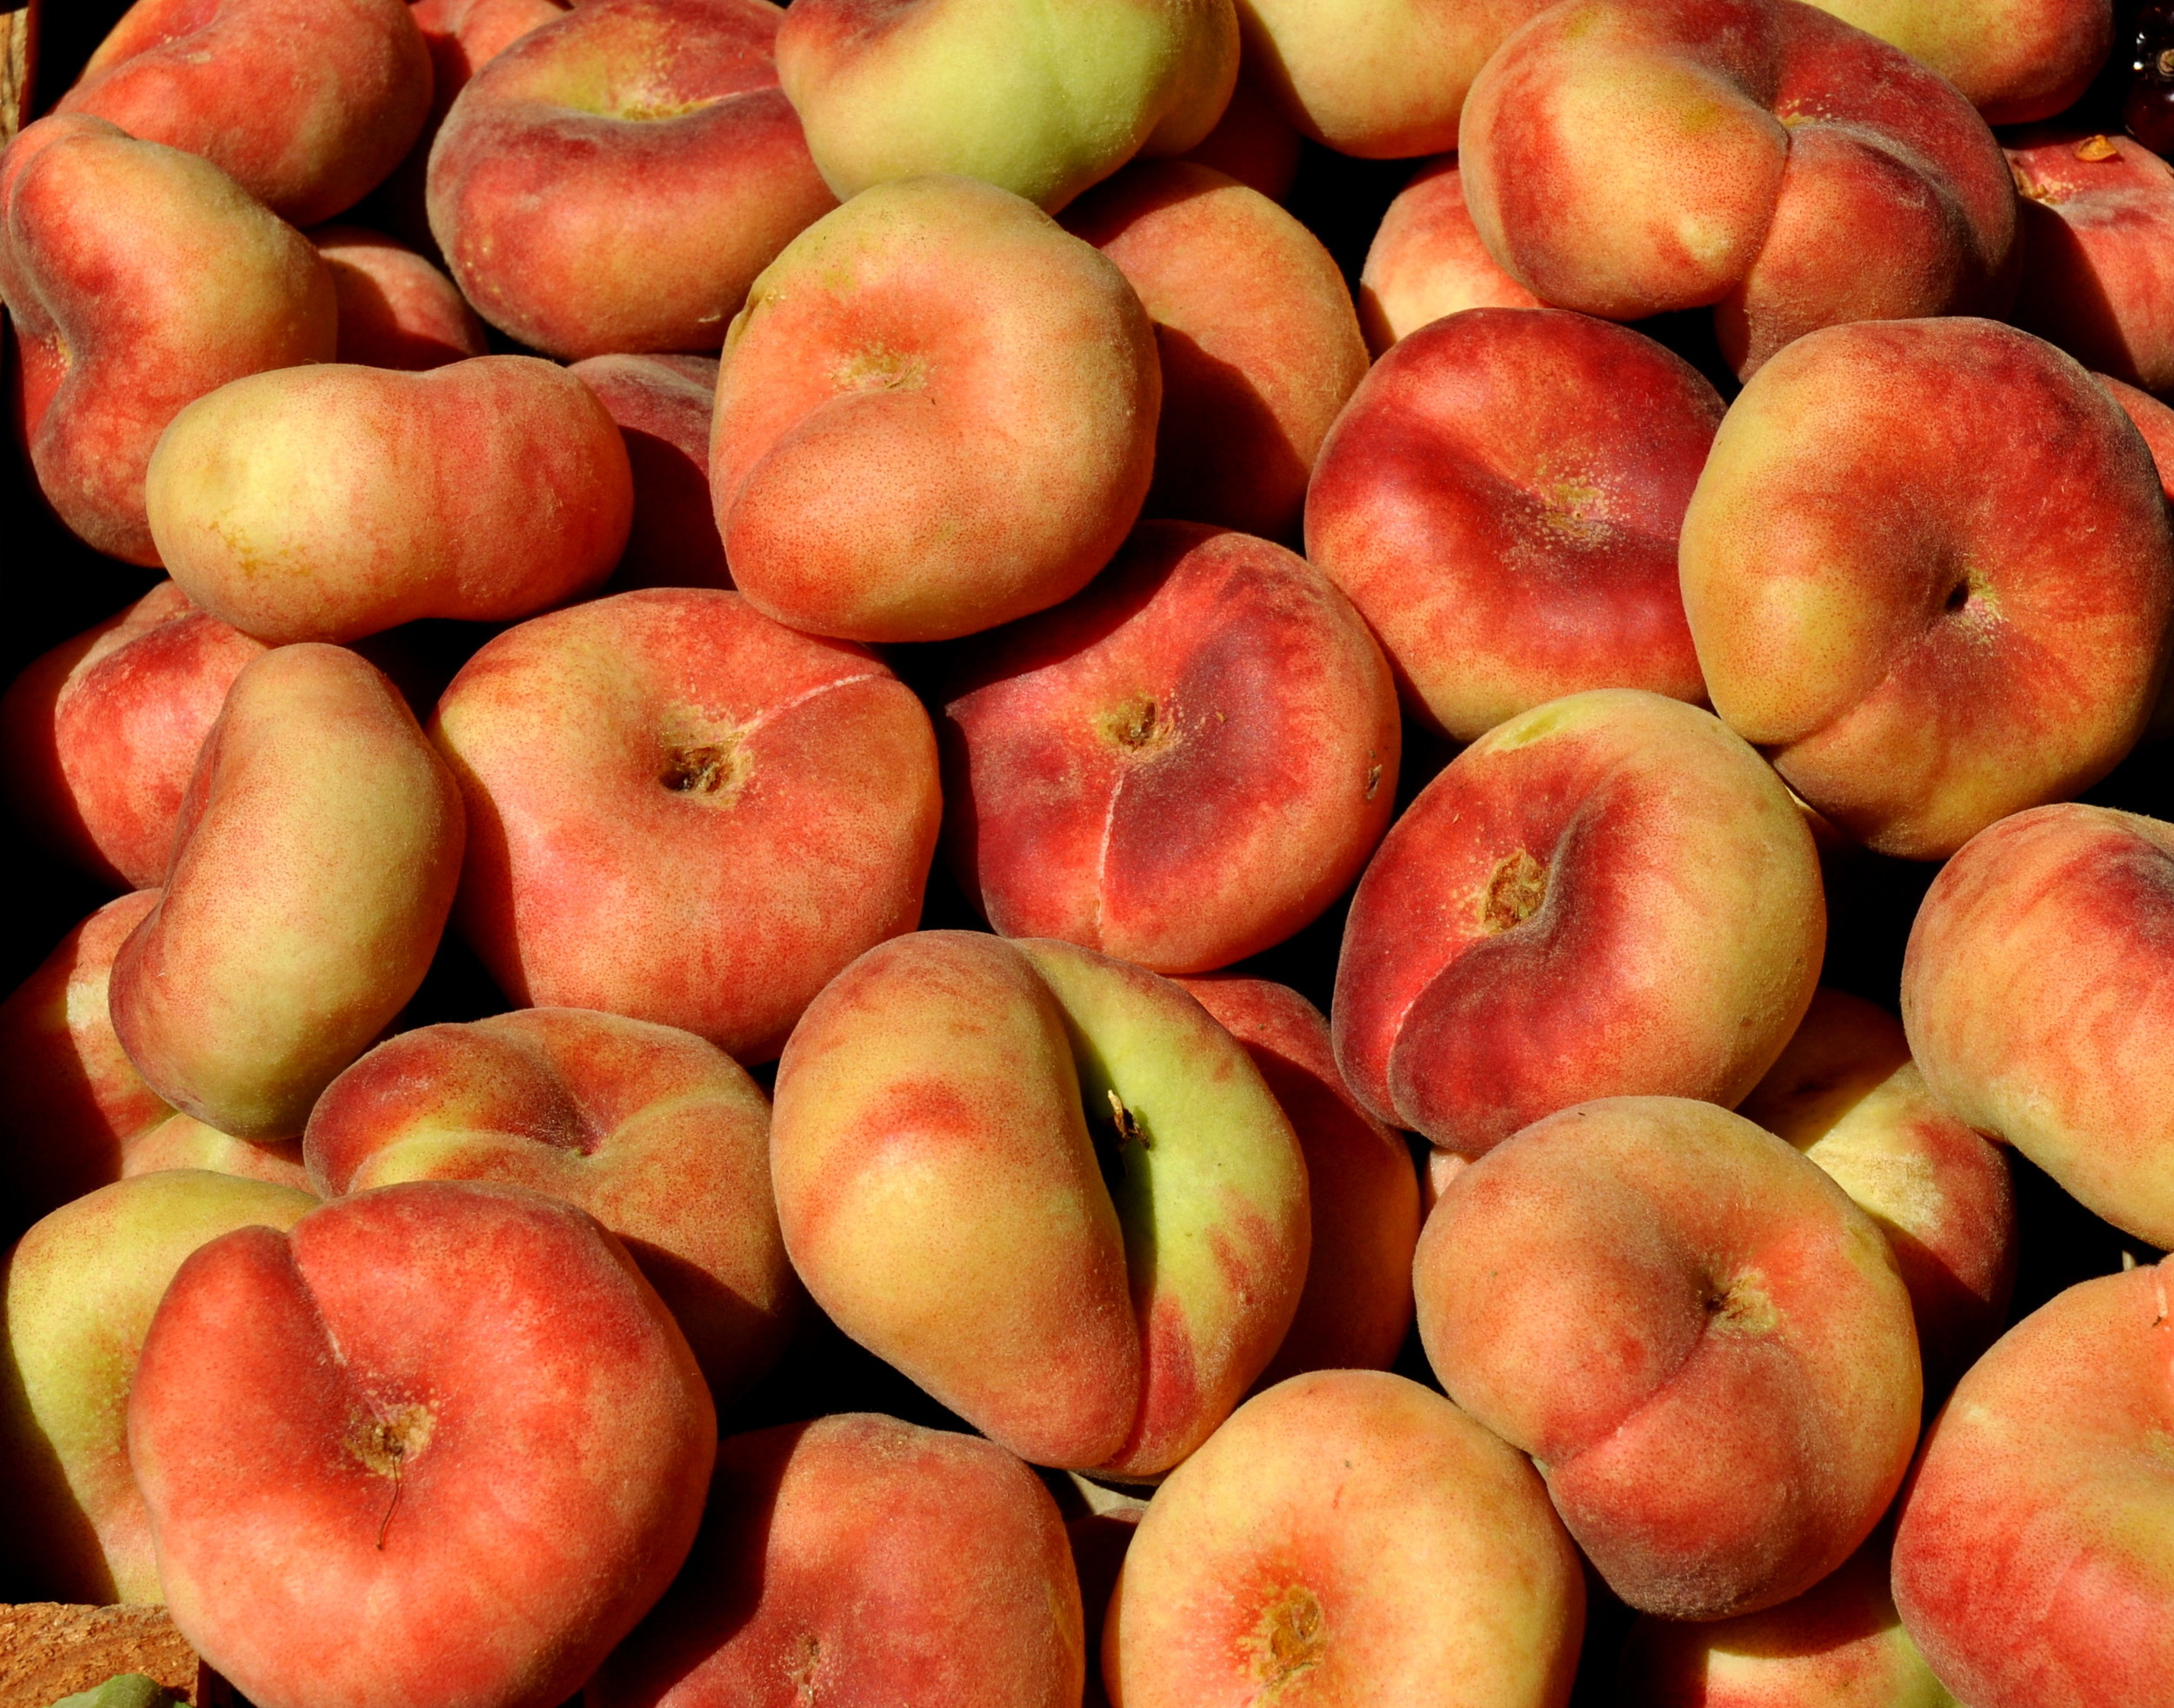 Donut peaches from Collins Family Orchards. Photo copyright 2013 by Zachary D. Lyons.